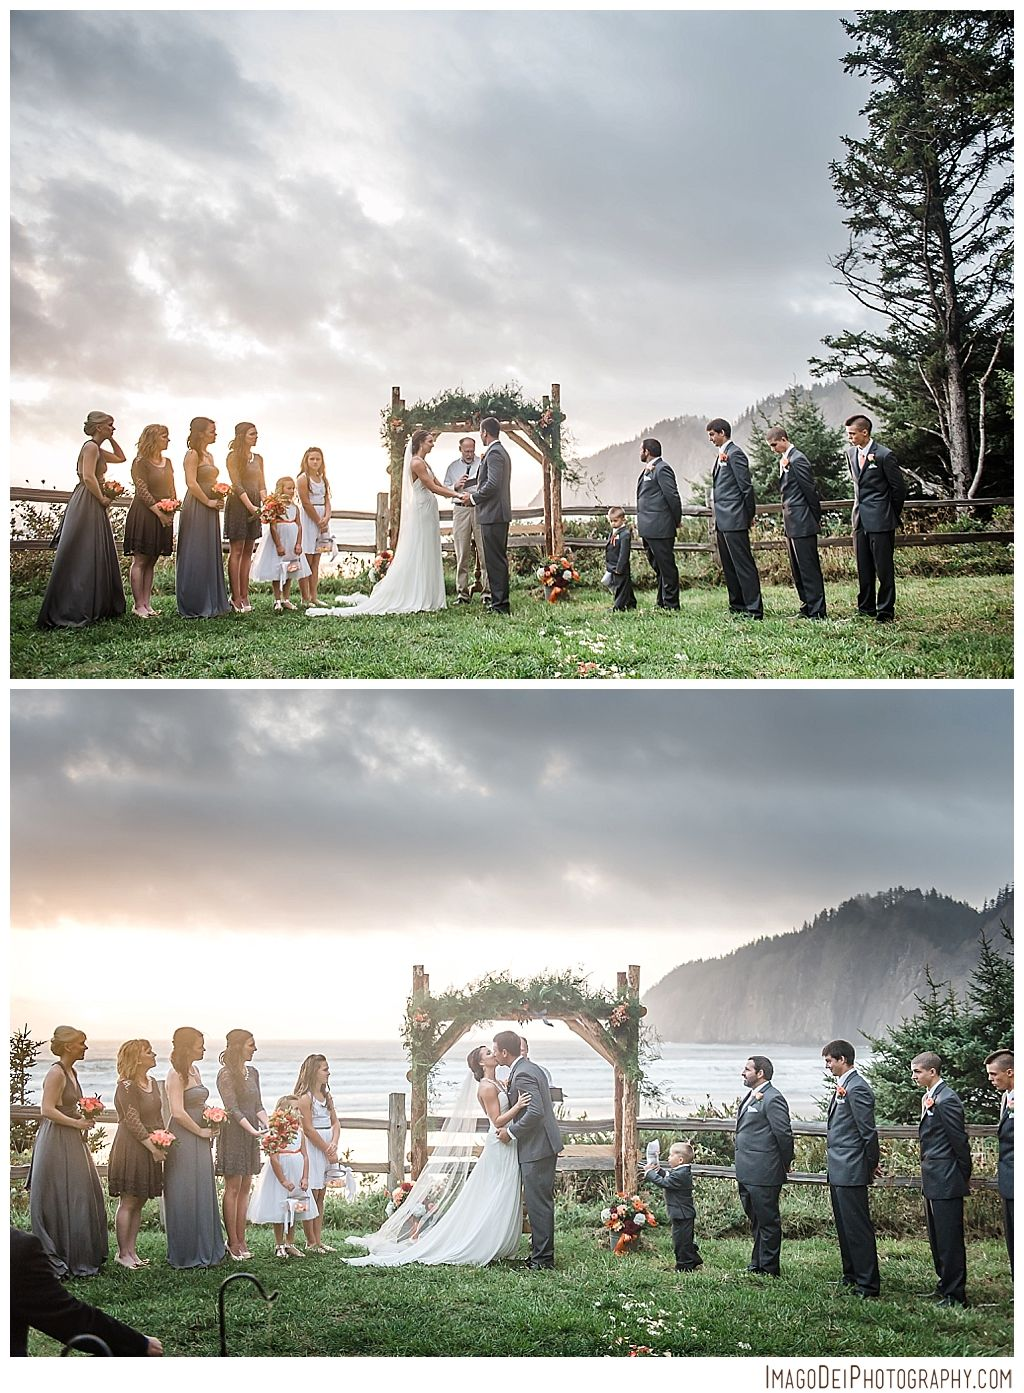 Wedding In The Forest Pacific City Oregon Coast Photographer Imago Dei Photography Xiomara Gard